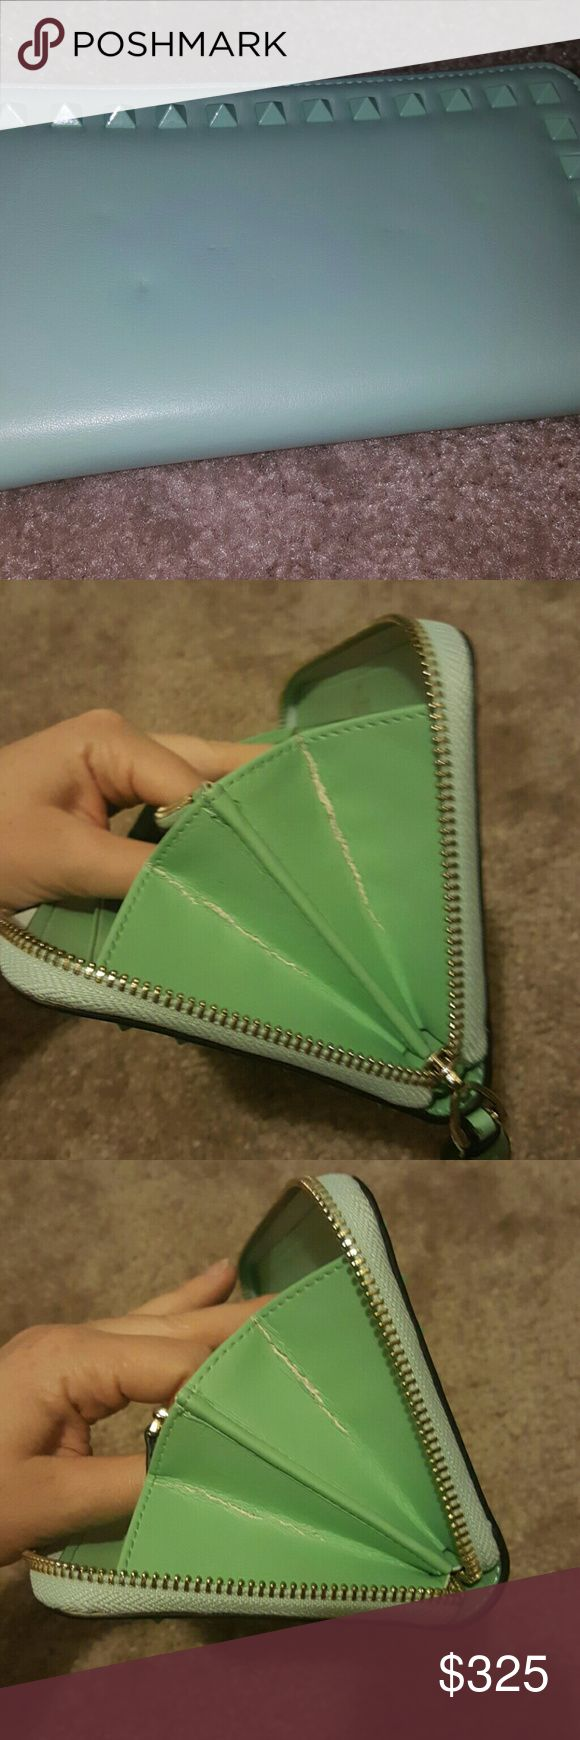 Additional Photos of Valentino Wallet Lightly used AUTHENTIC Valentino Rockstud Wallet in Mint Green. Very rare color and beautiful wallet. Front looks unused where as the back has some marks. They arent very noticable. Second listing shows wear! Rockstuds all in tact. BEAUTIFUL CLASSIC piece. NOT interested in trading :) (unless it is for other Rockstud pieces, st laurent or all saints) Valentino Bags Wallets